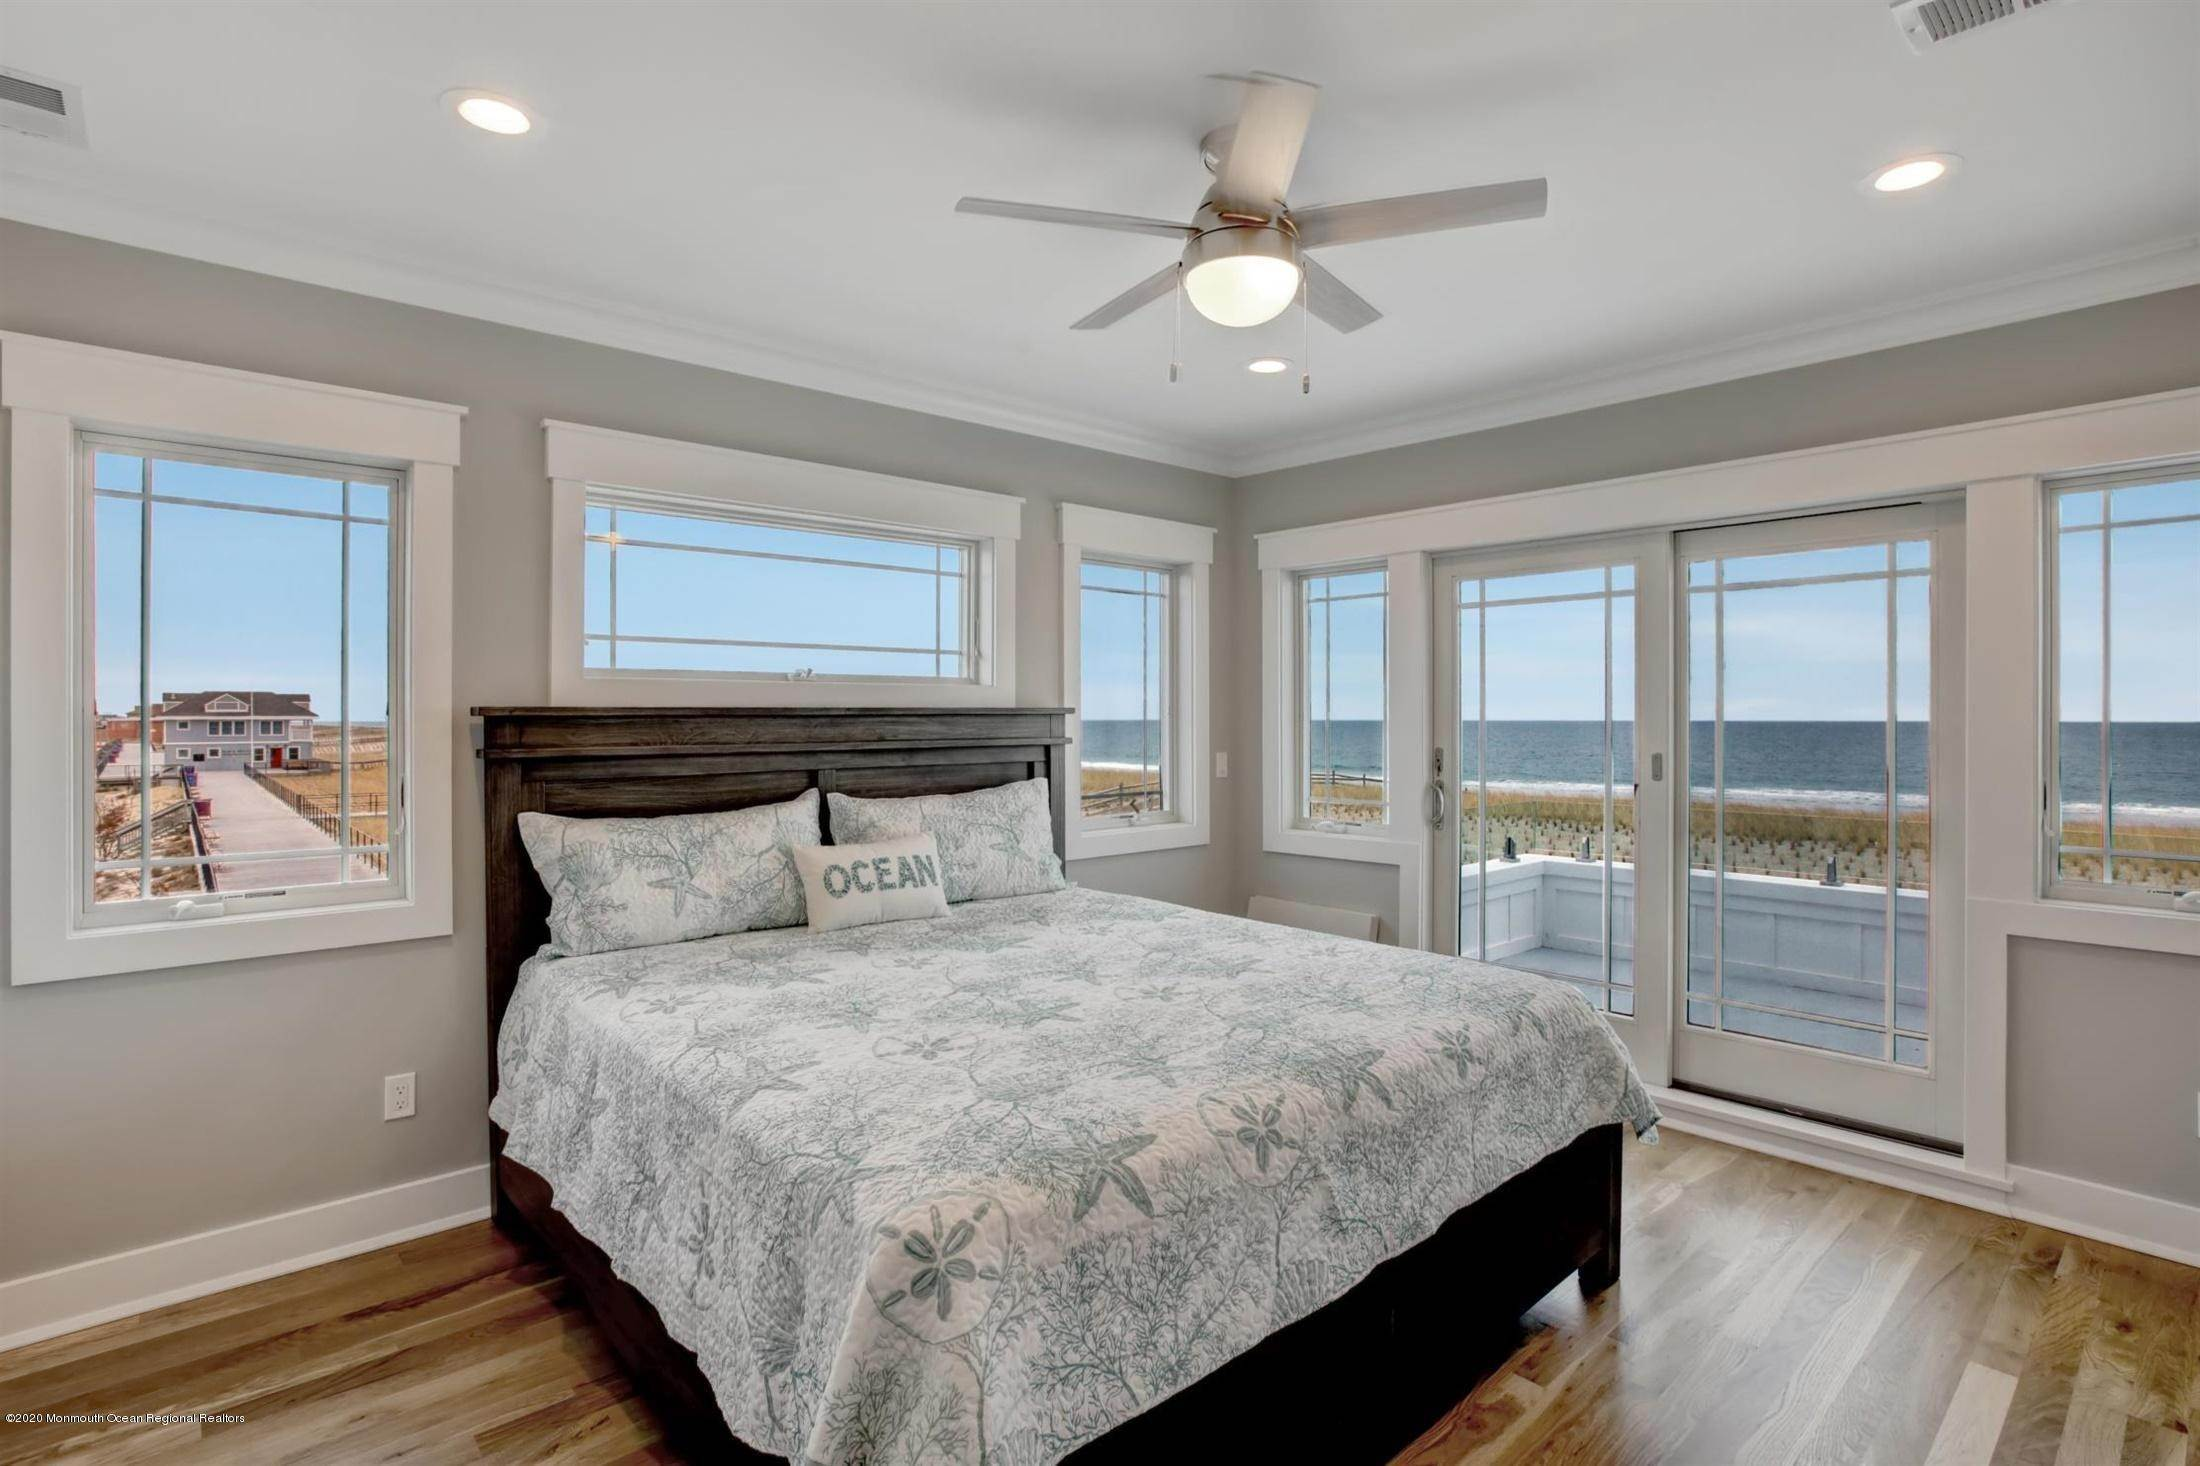 21. Single Family Home for Rent at 1728 Oceanfront Ortley Beach, New Jersey, 08751 United States